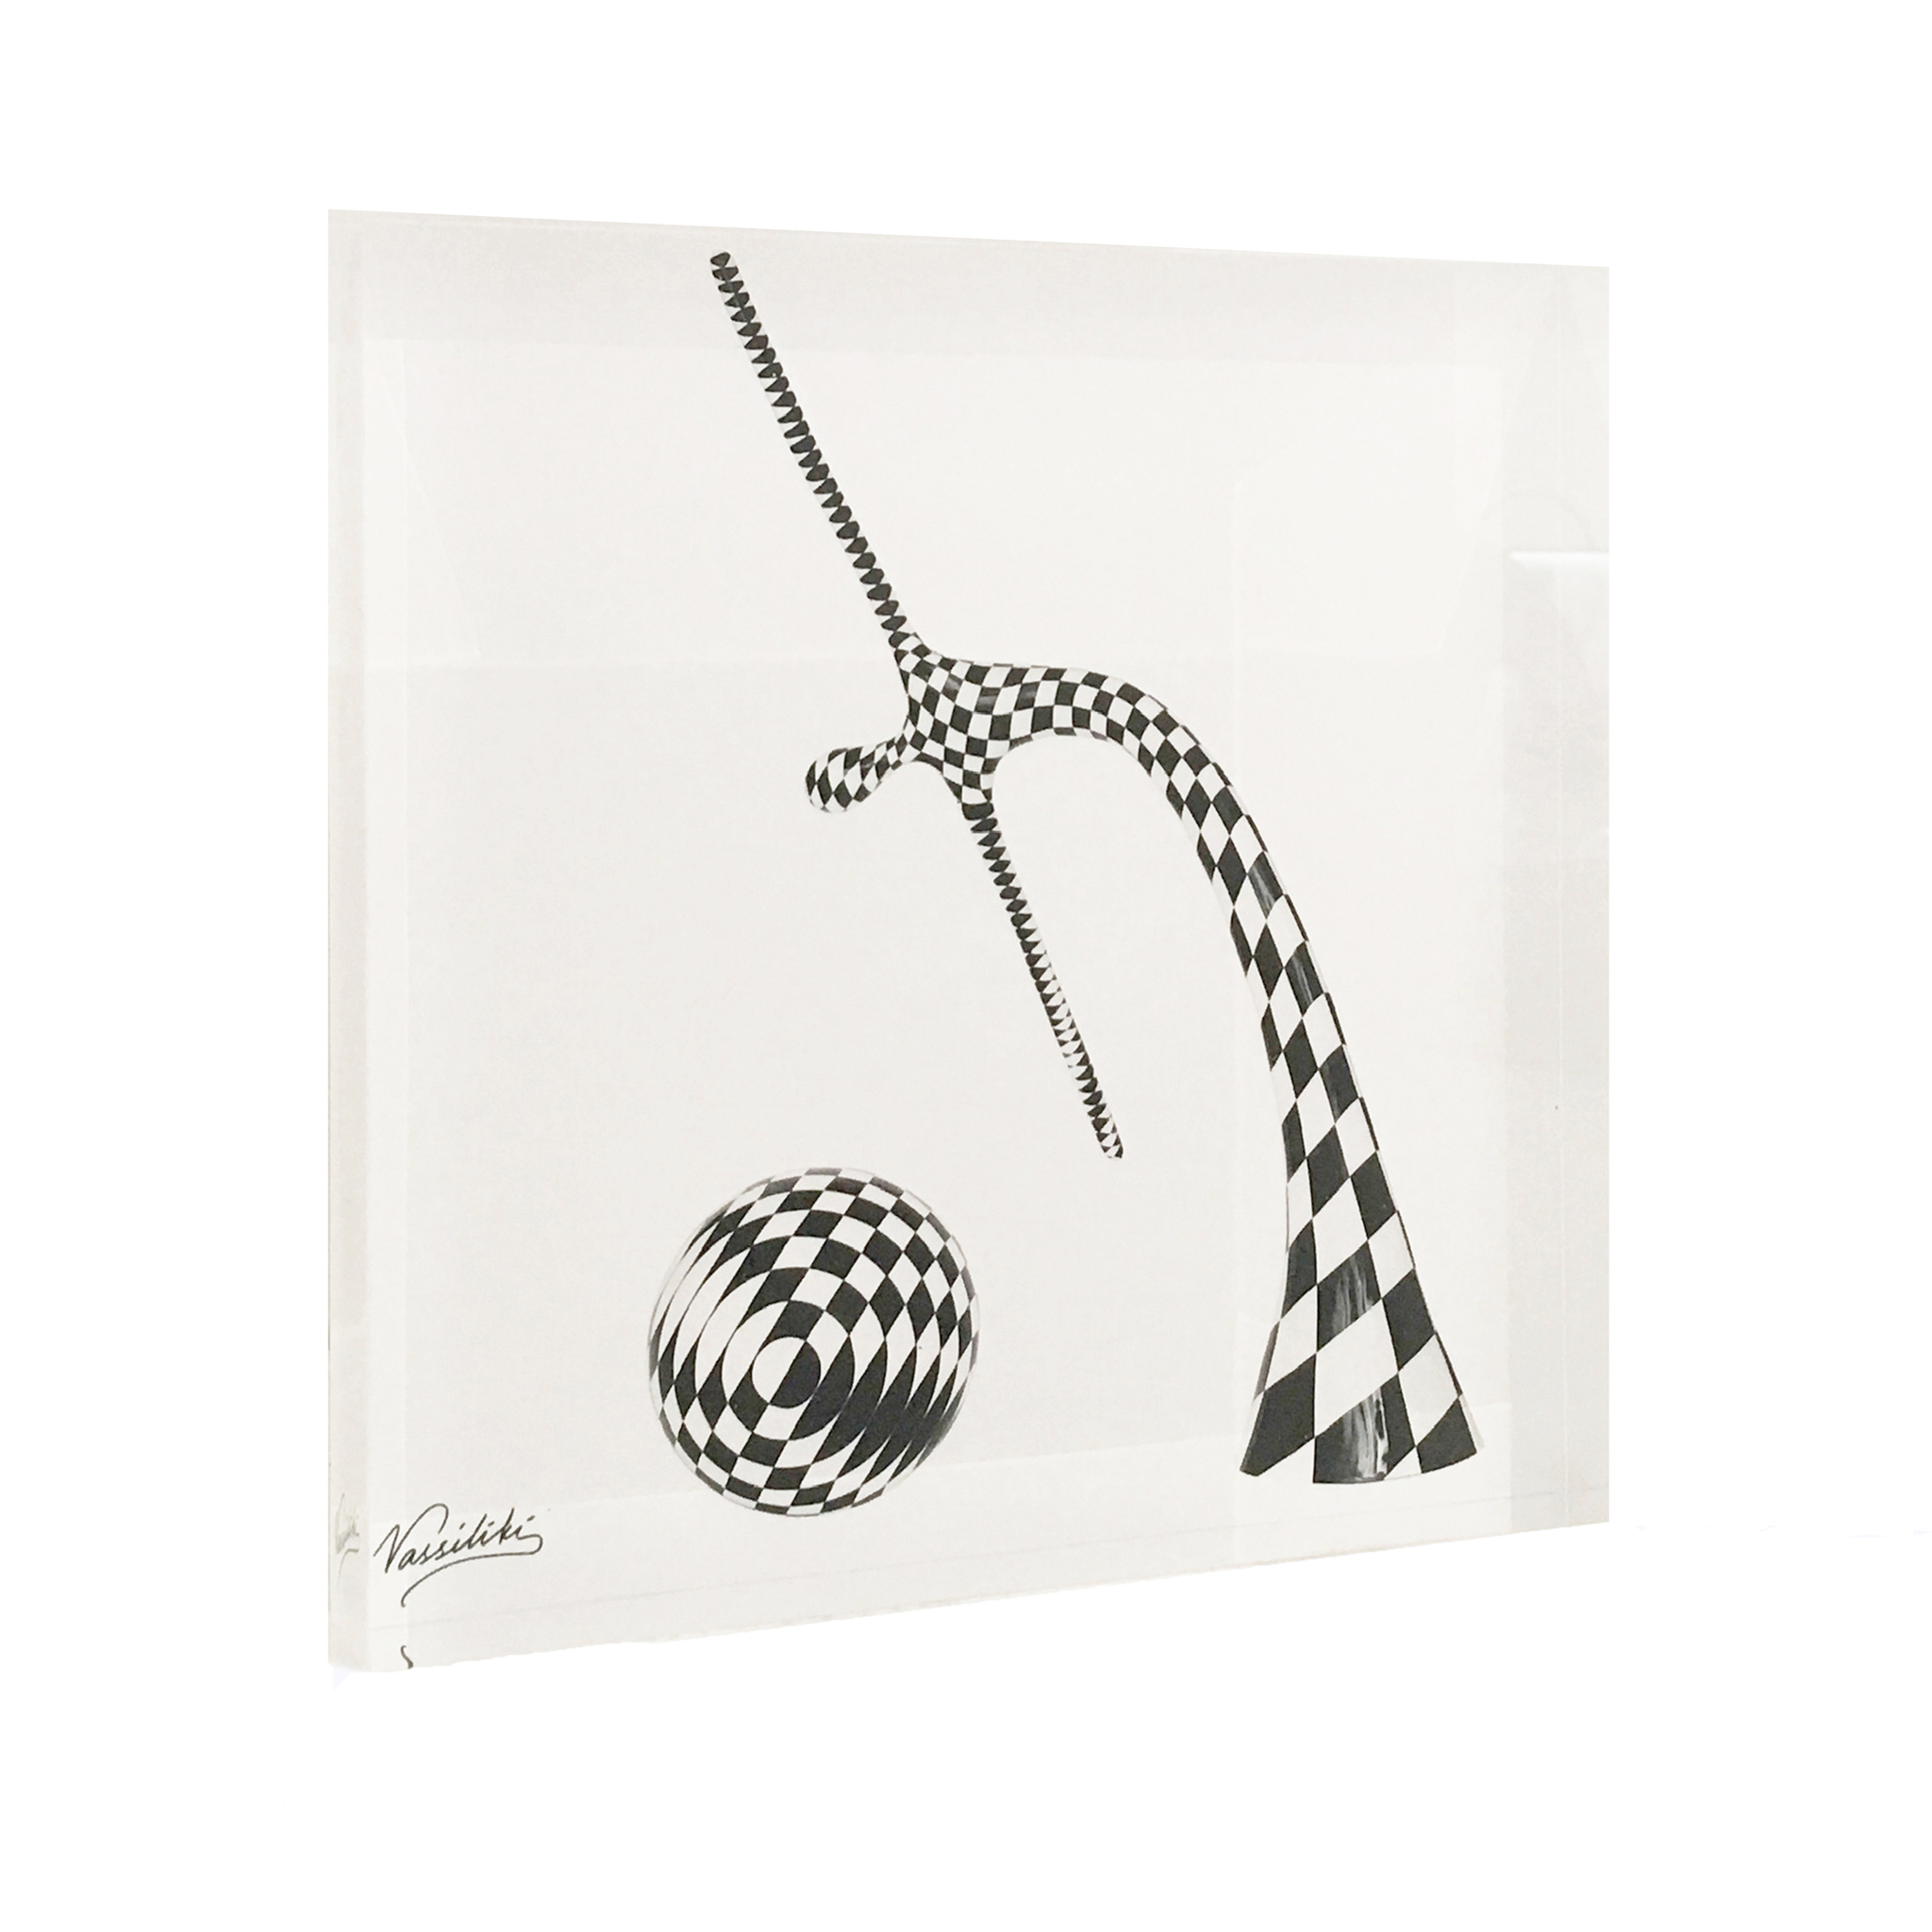 Harlequin and sphere 1